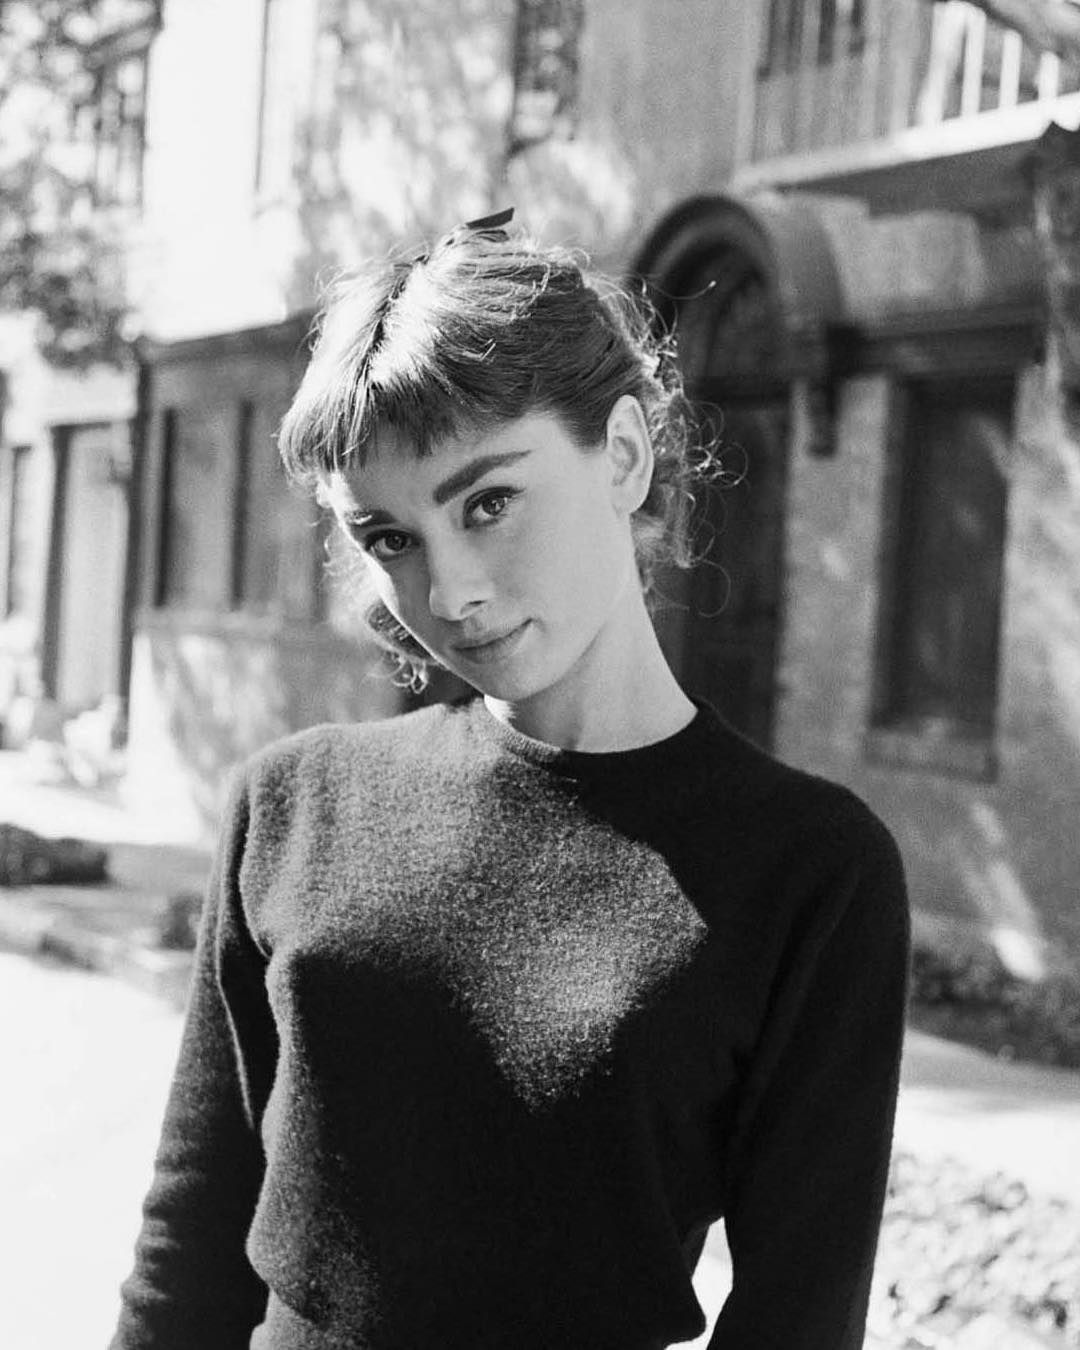 Audrey Hepburn photographed on the set of Sabrina by Mark Shaw, 1953.